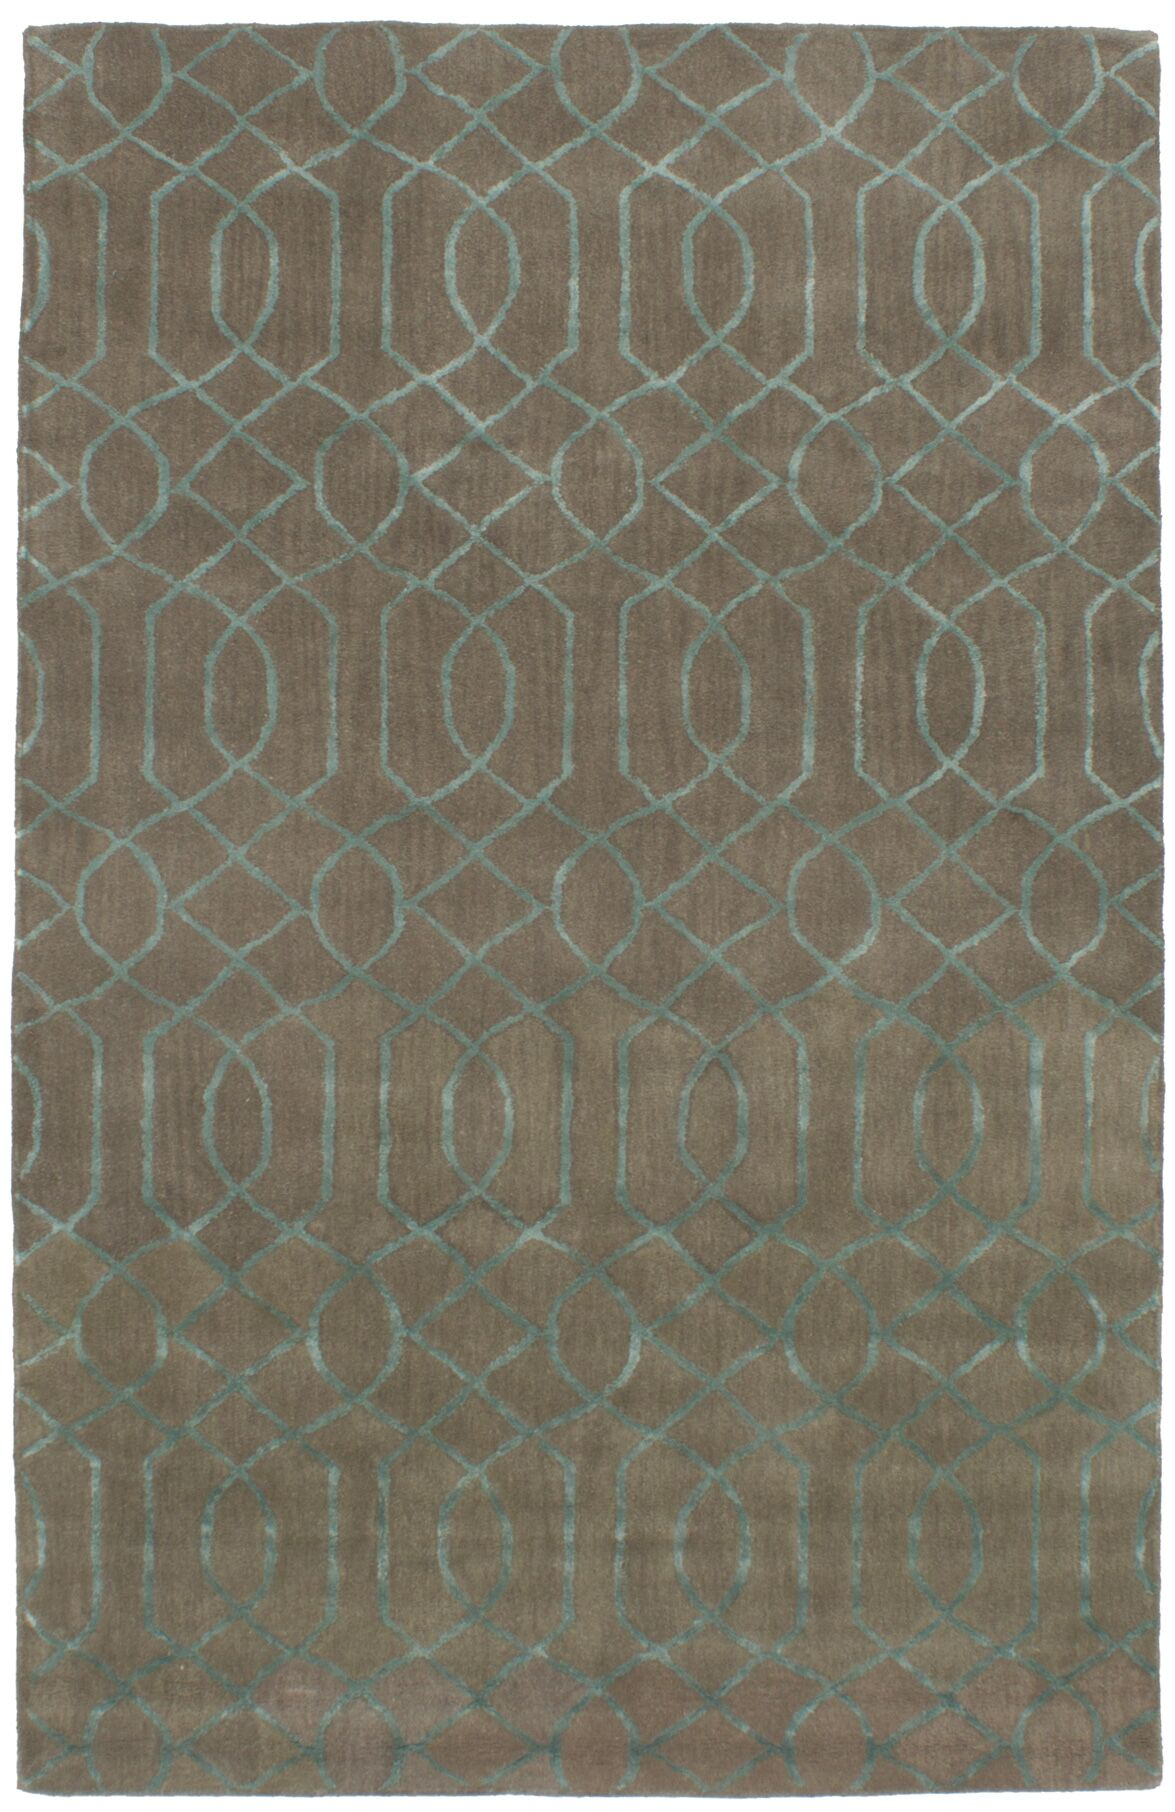 Griffing Hand-Tufted Wool/Silk Khaki/Turquoise Area Rug